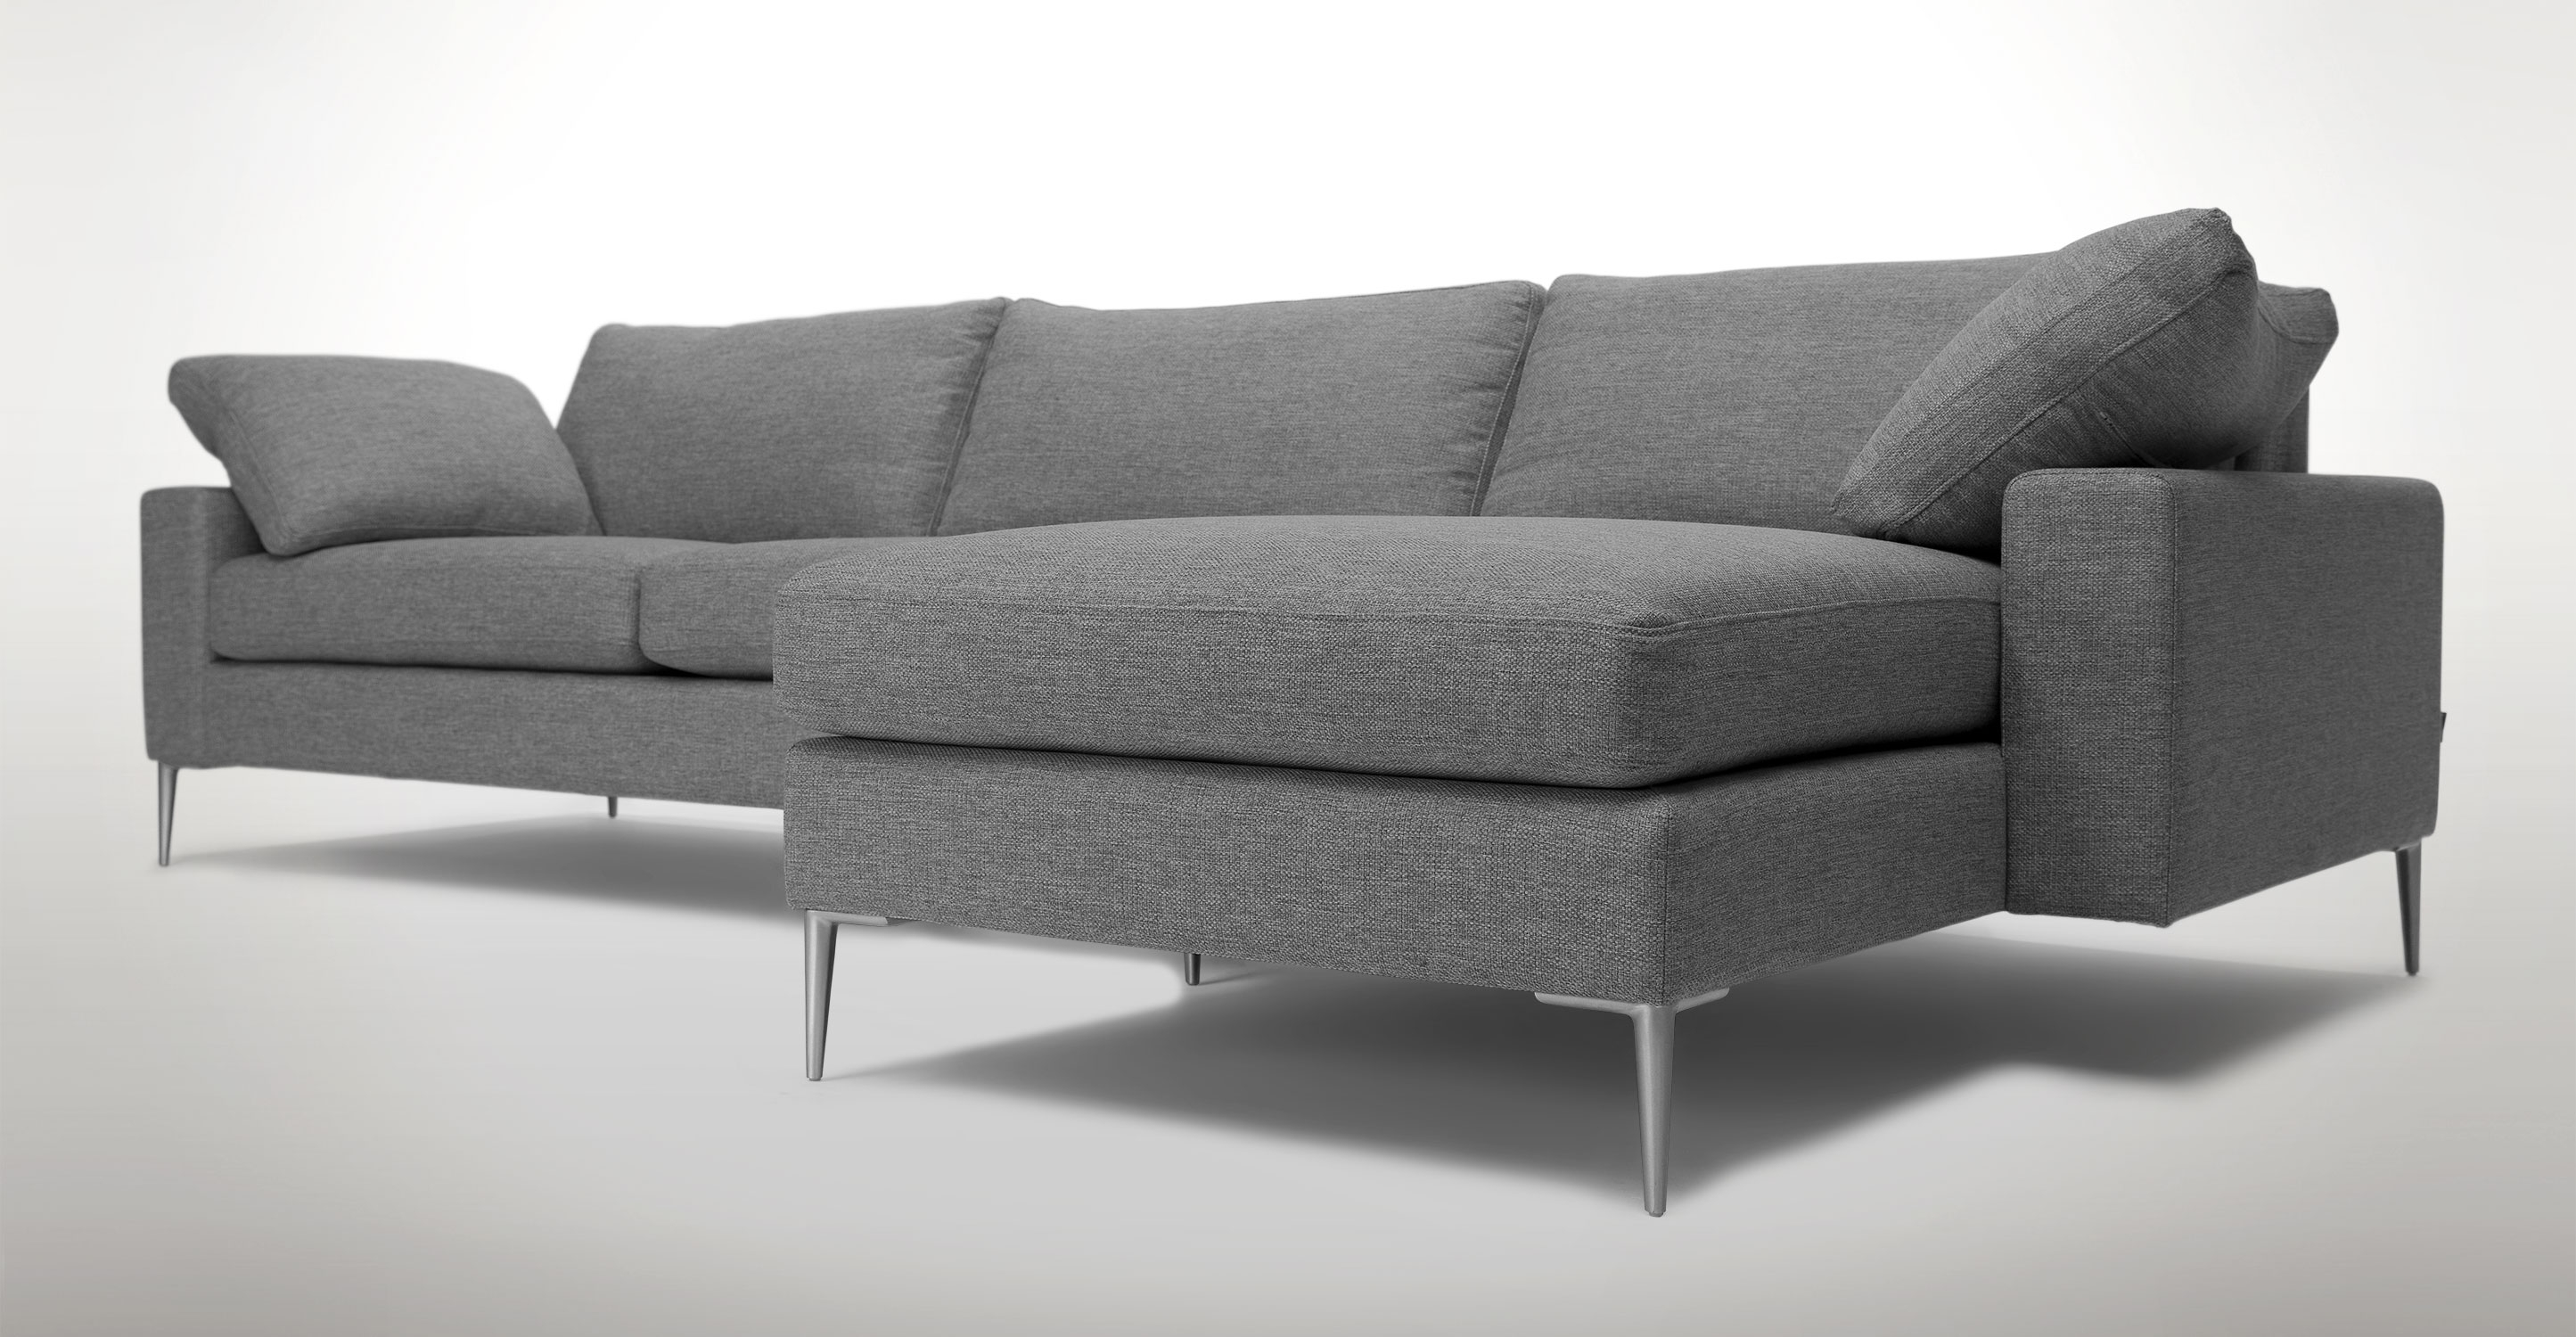 Sofa Orange Modern Appealing Curved Sectional For Furniture Leather Within Sectional Sofas At Bc Canada (View 2 of 10)